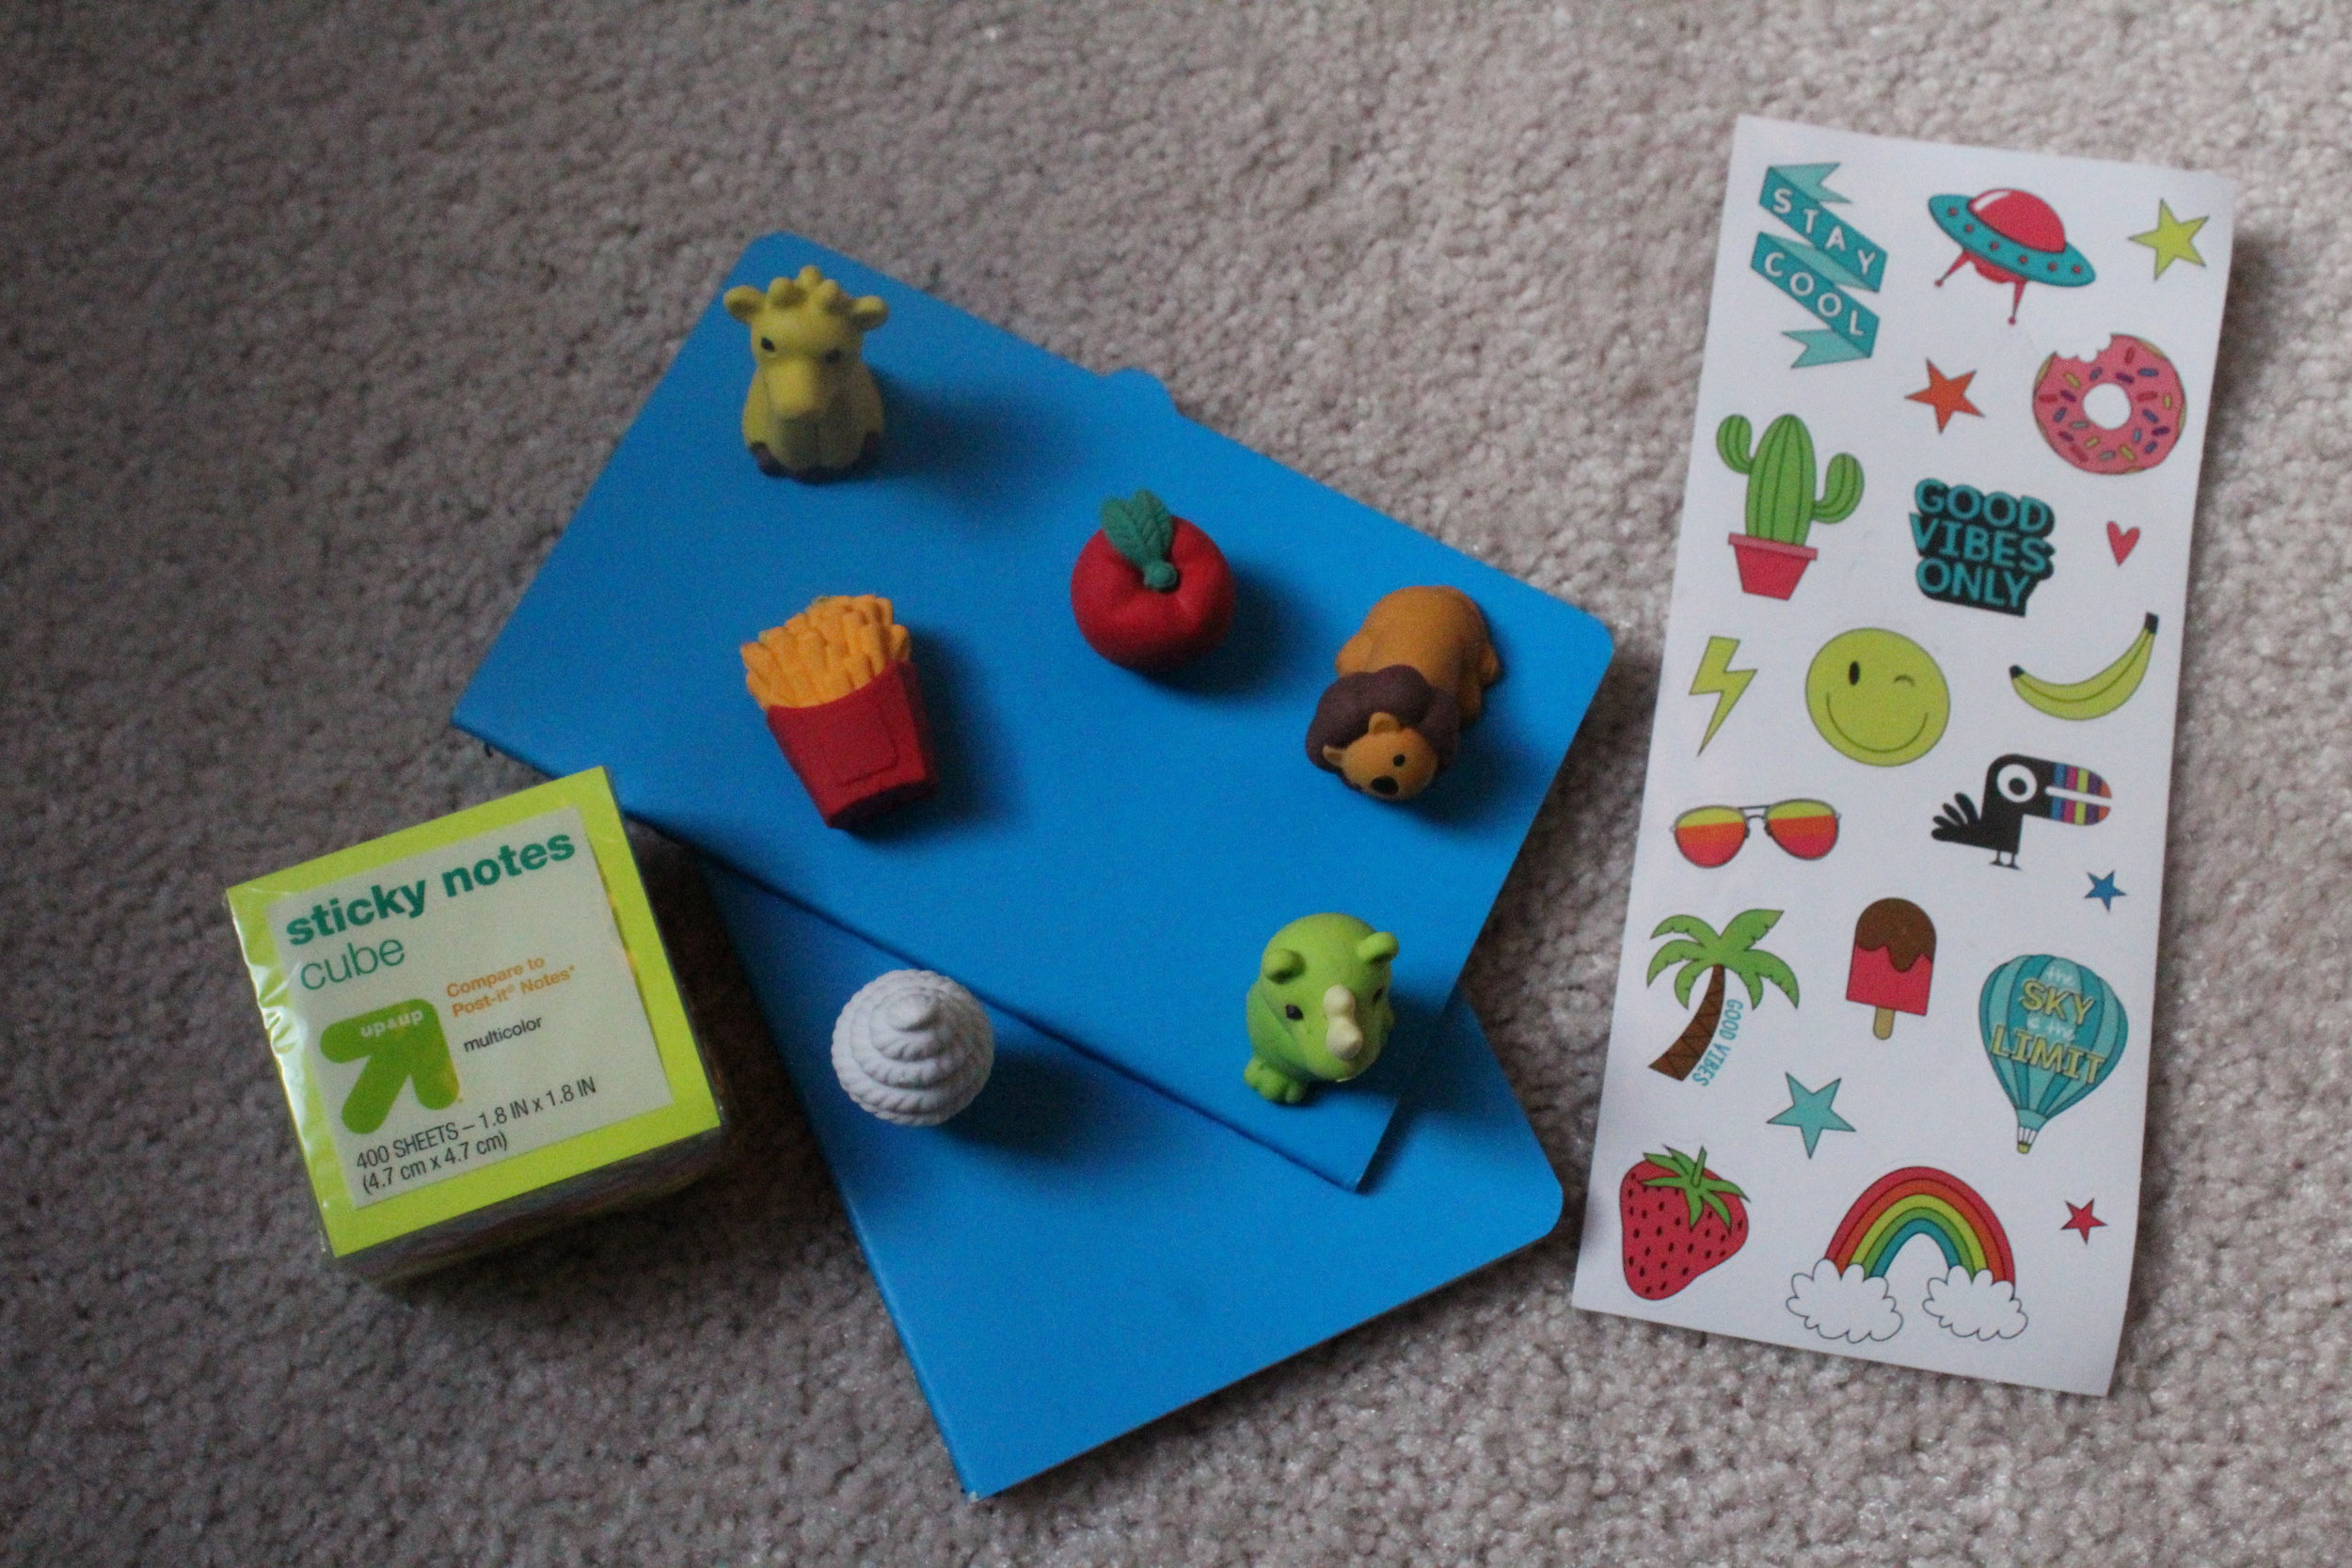 Some very profesh office supplies. You can never have too many erasers shaped like food and animals AMIRIGHT.